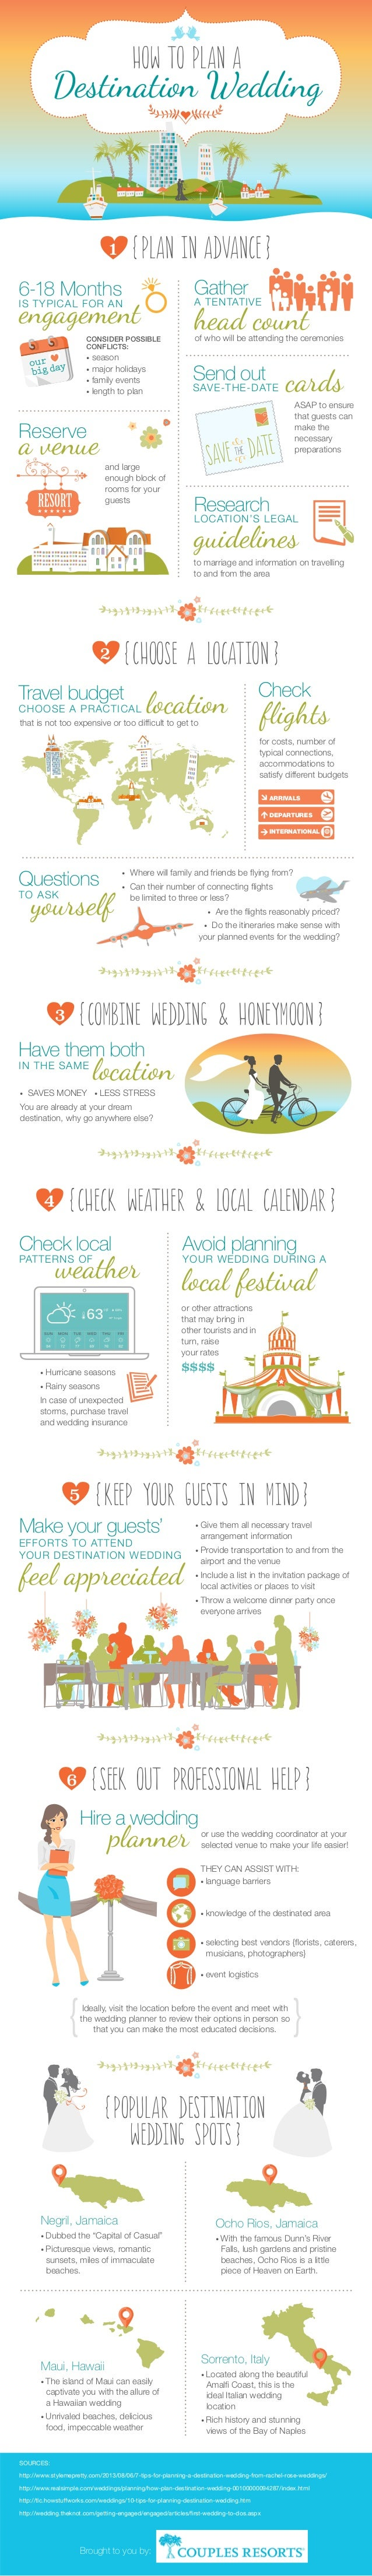 HOW TO PLAN A  Destination Wedding  { PLAN IN ADVANCE }  1  Gather  6-18 Months  engagement  A TENTATIVE  IS TYPICAL FOR A...